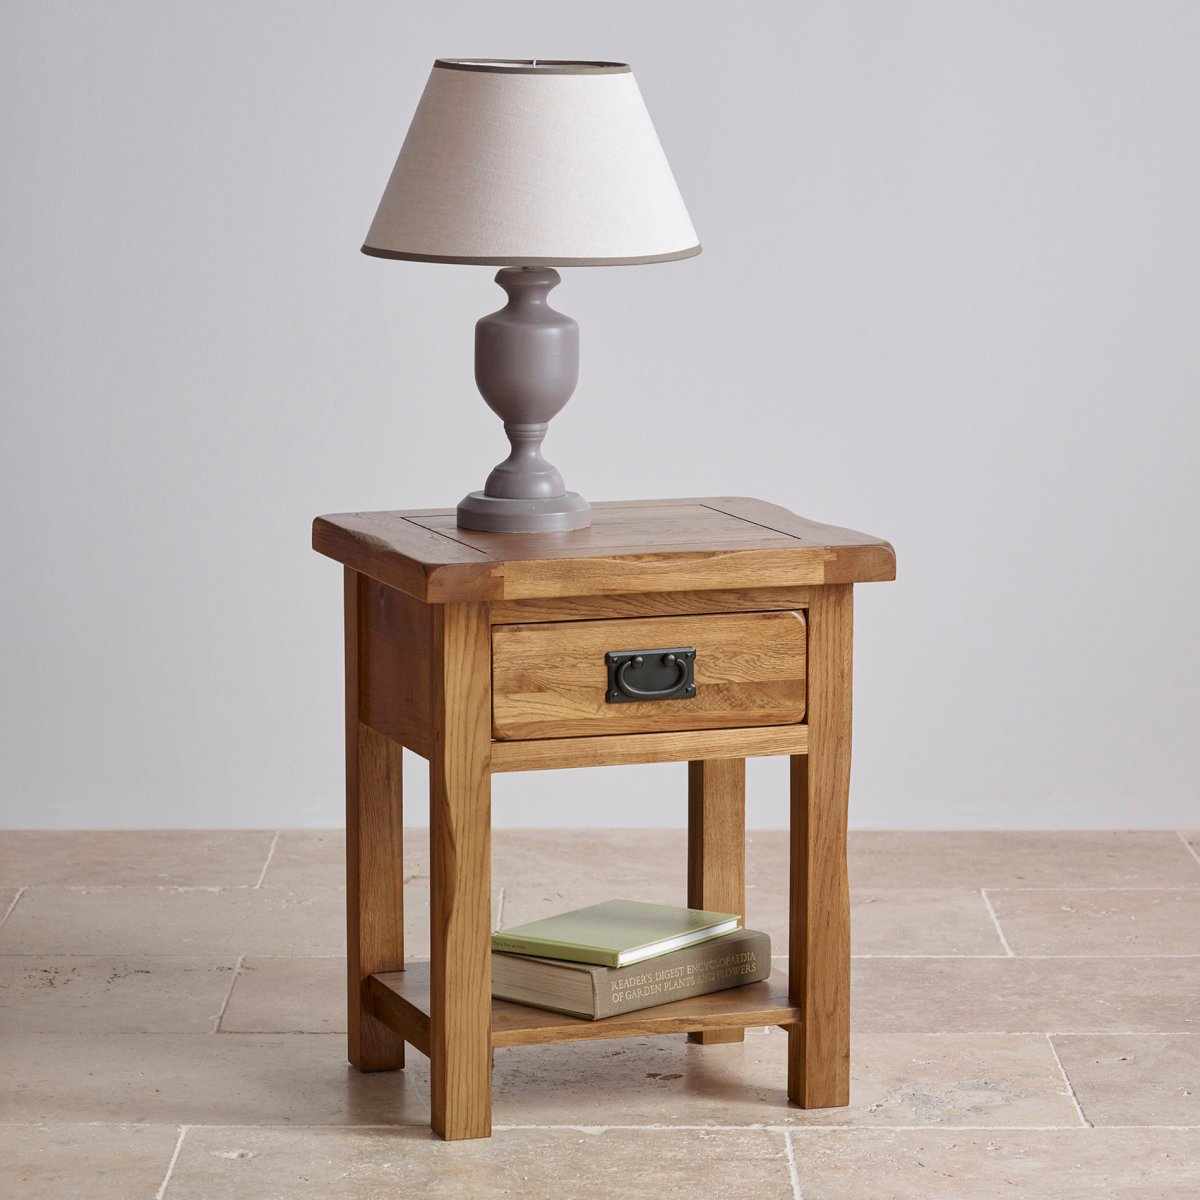 Original Rustic Lamp Table In Solid Oak Furniture Land